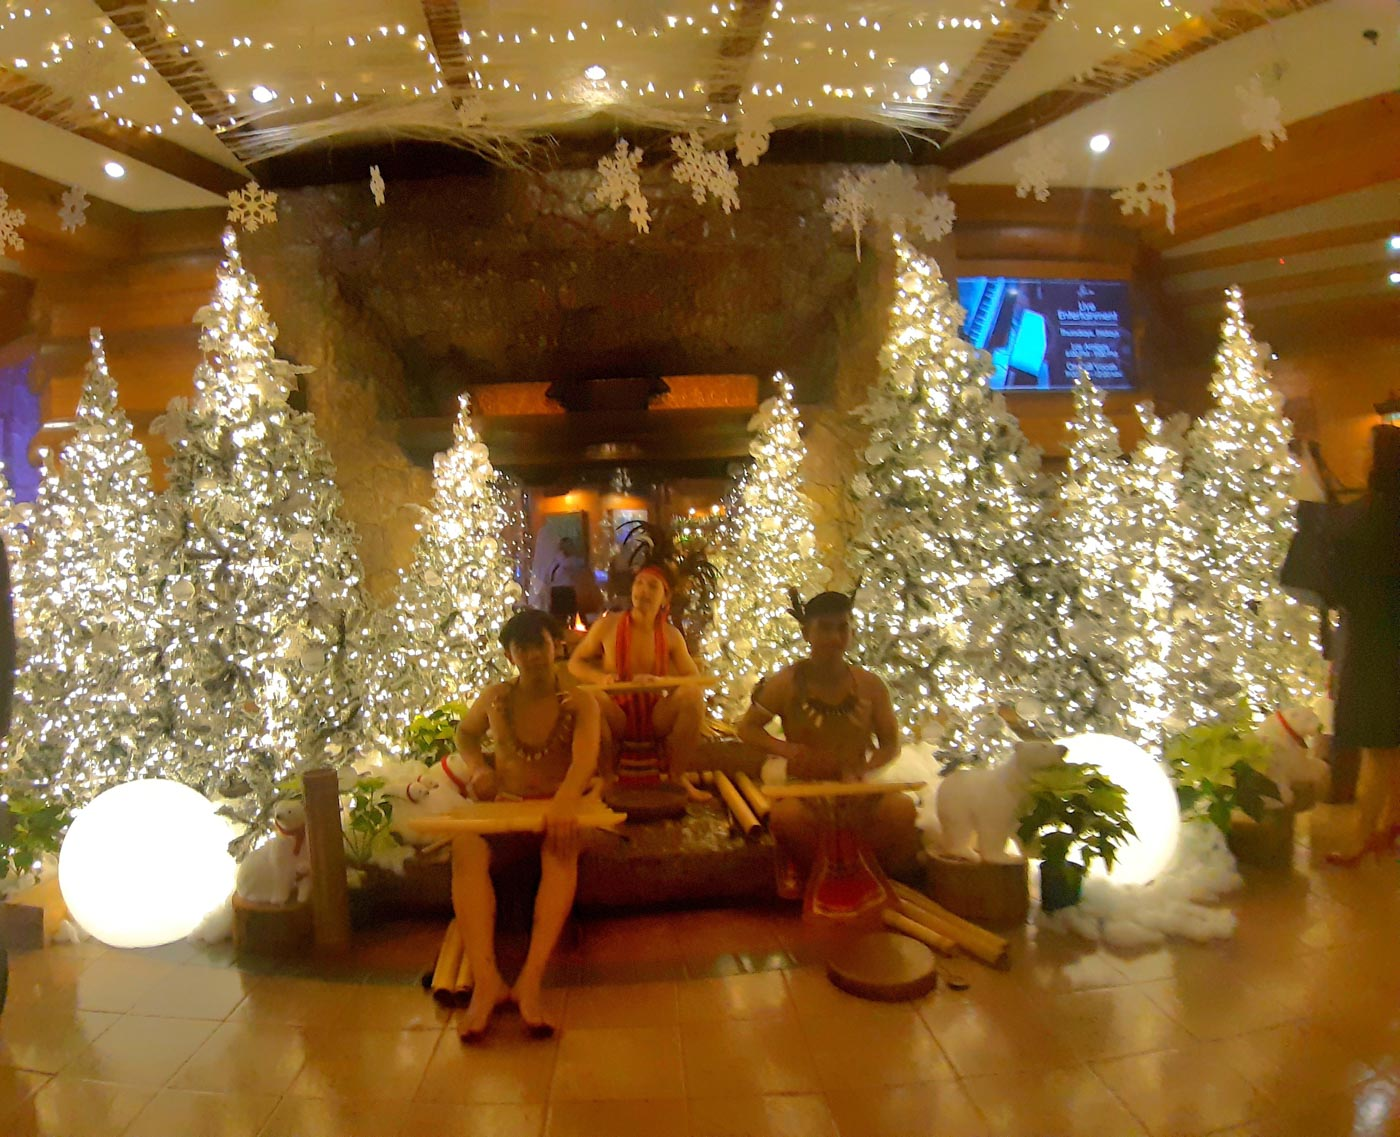 MANOR TREES. The Camp John Hay Manor Hotel starts the Yuletide season with their Christmas Tree lighting on November 9. Photo by Mau Victa/Rappler